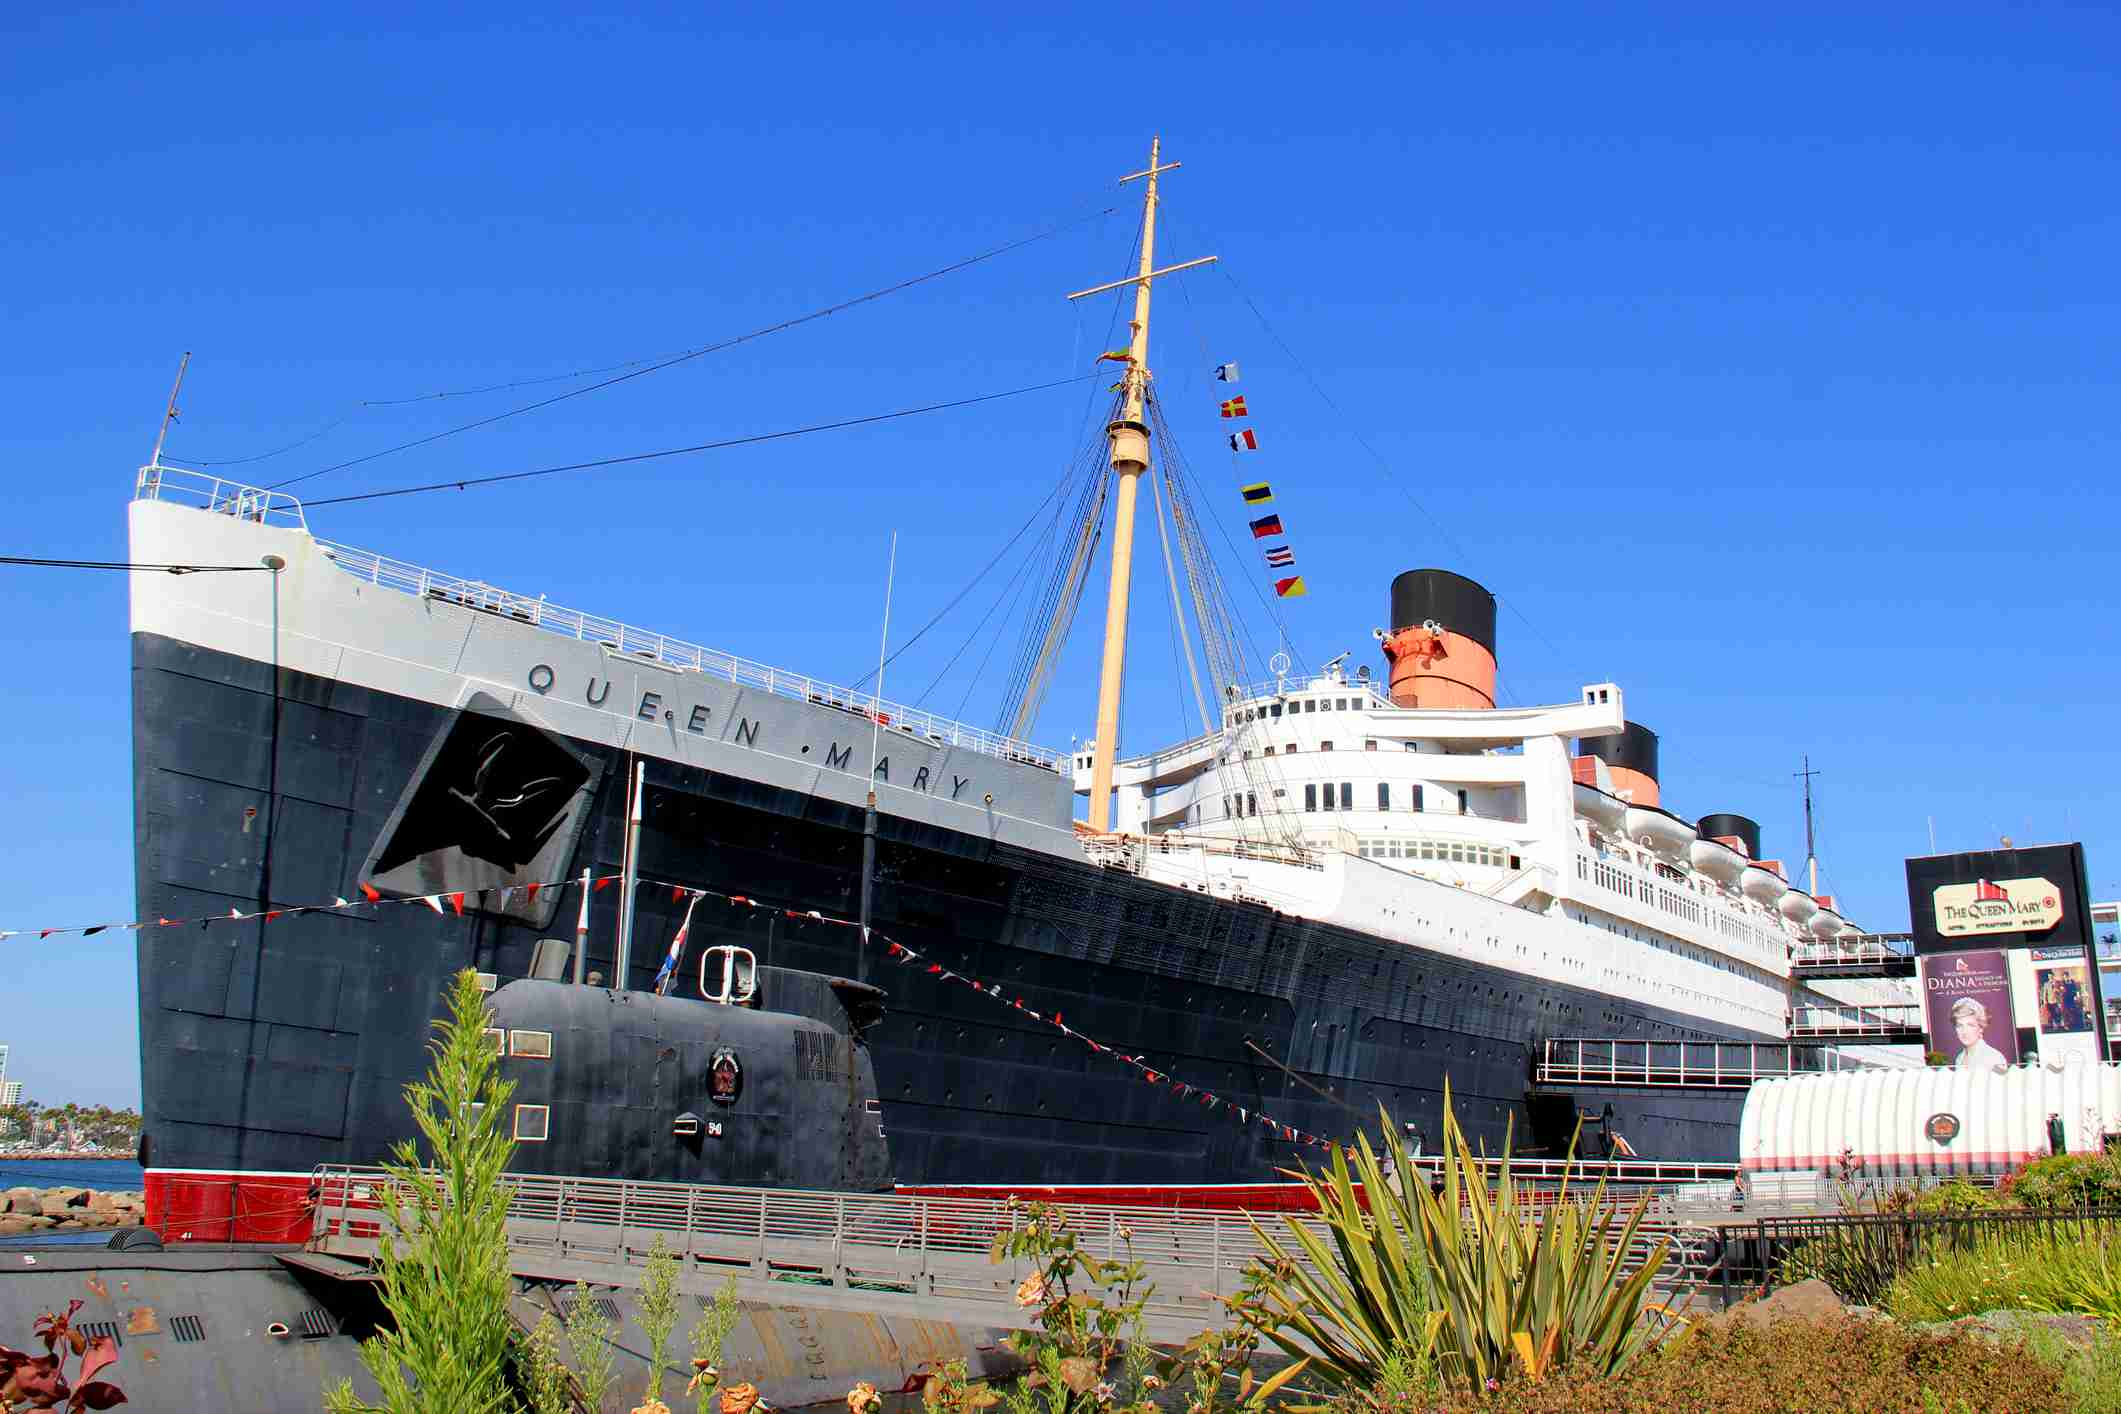 The Queen Mary docked in Long Beach, California